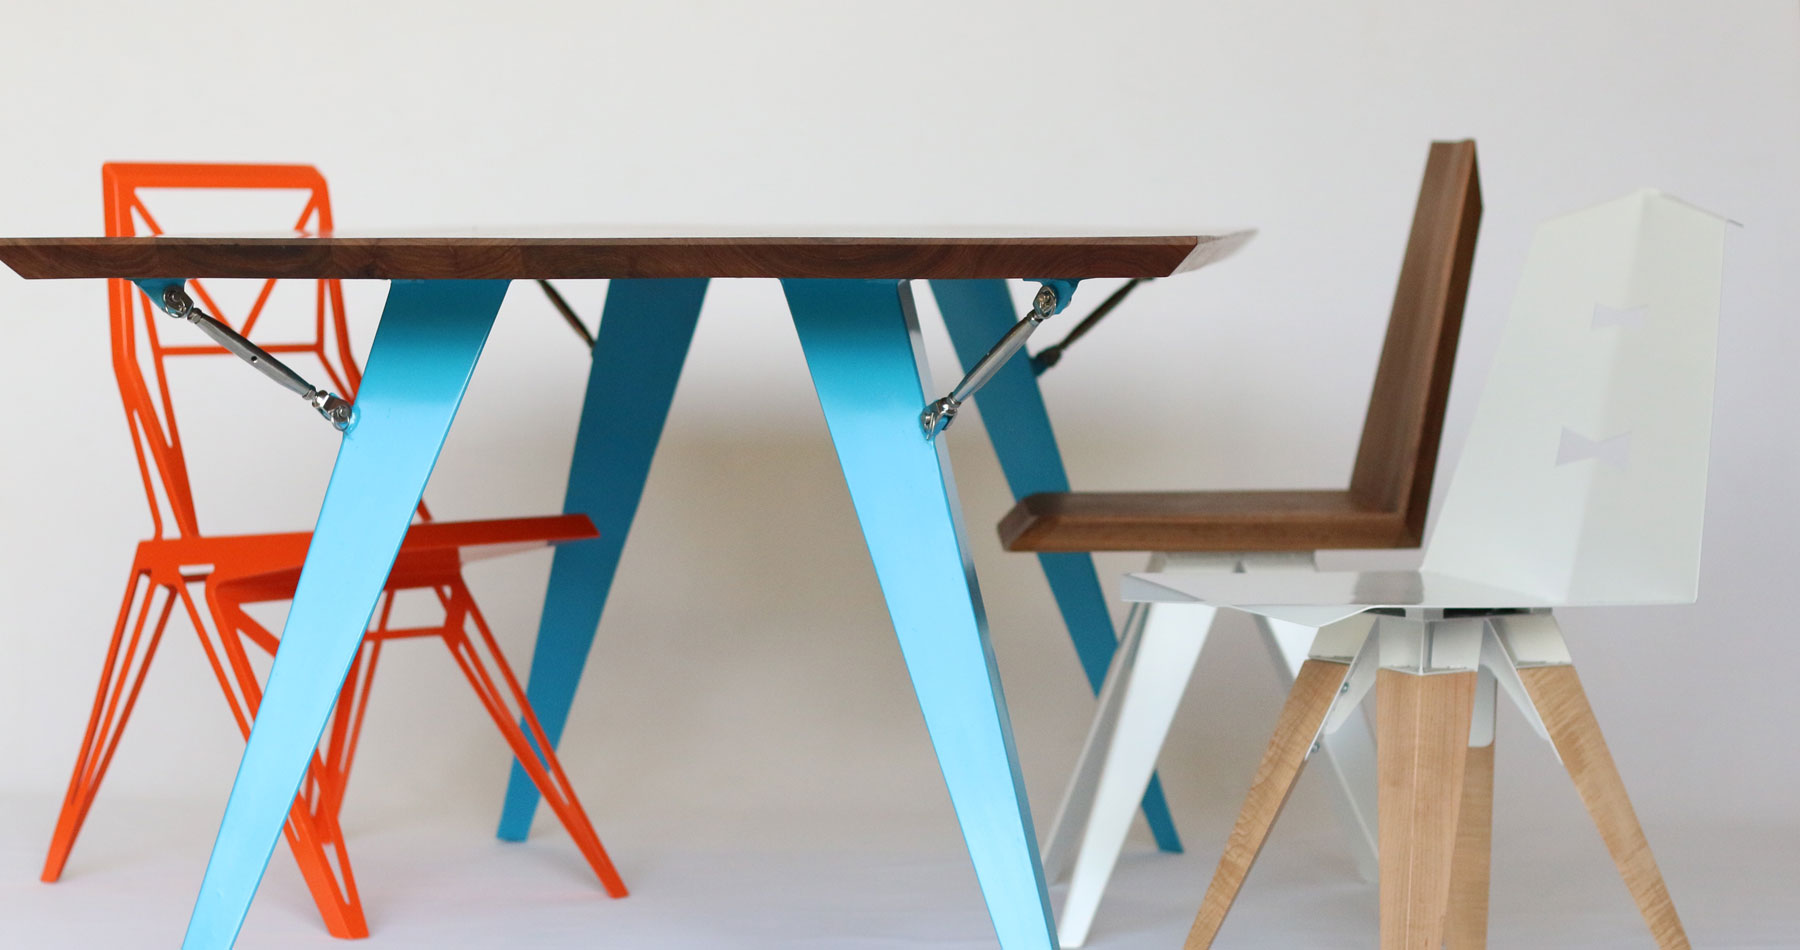 Bayly Art creates modern furnishings for both indoorand exterior use, including chairs, tables, and stools.